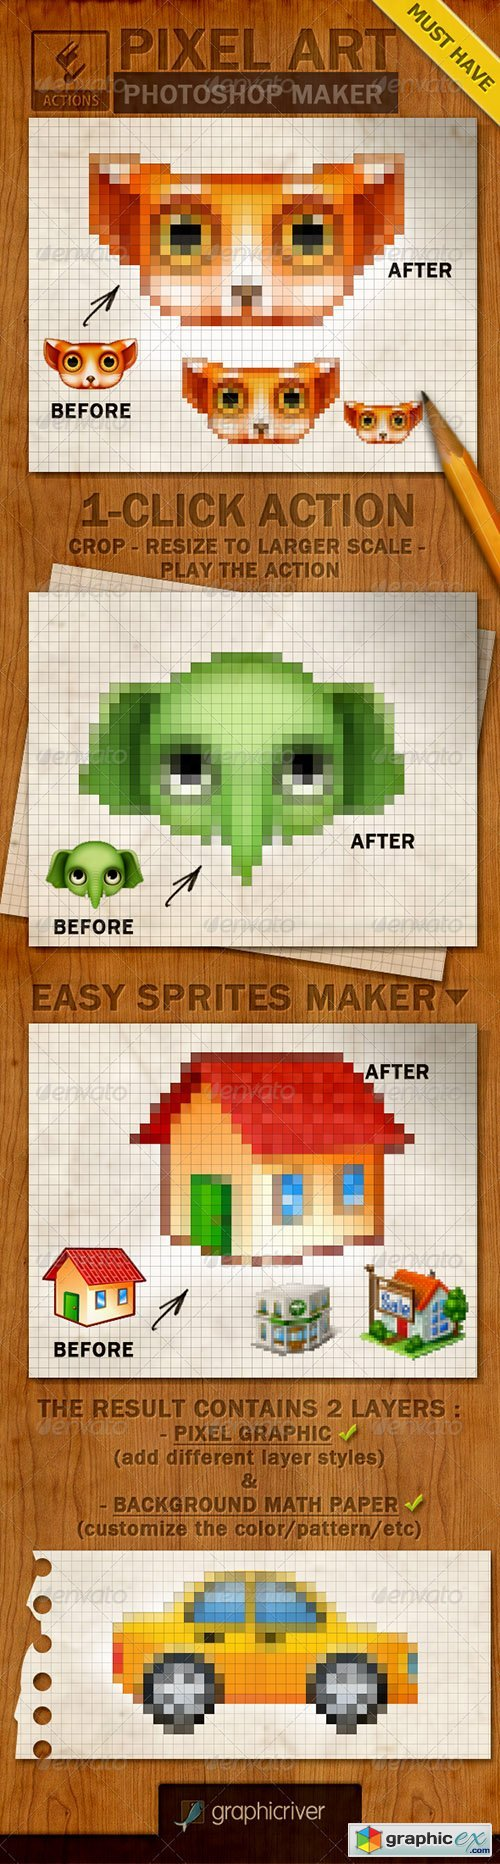 Pixel Art Creator Photoshop Action